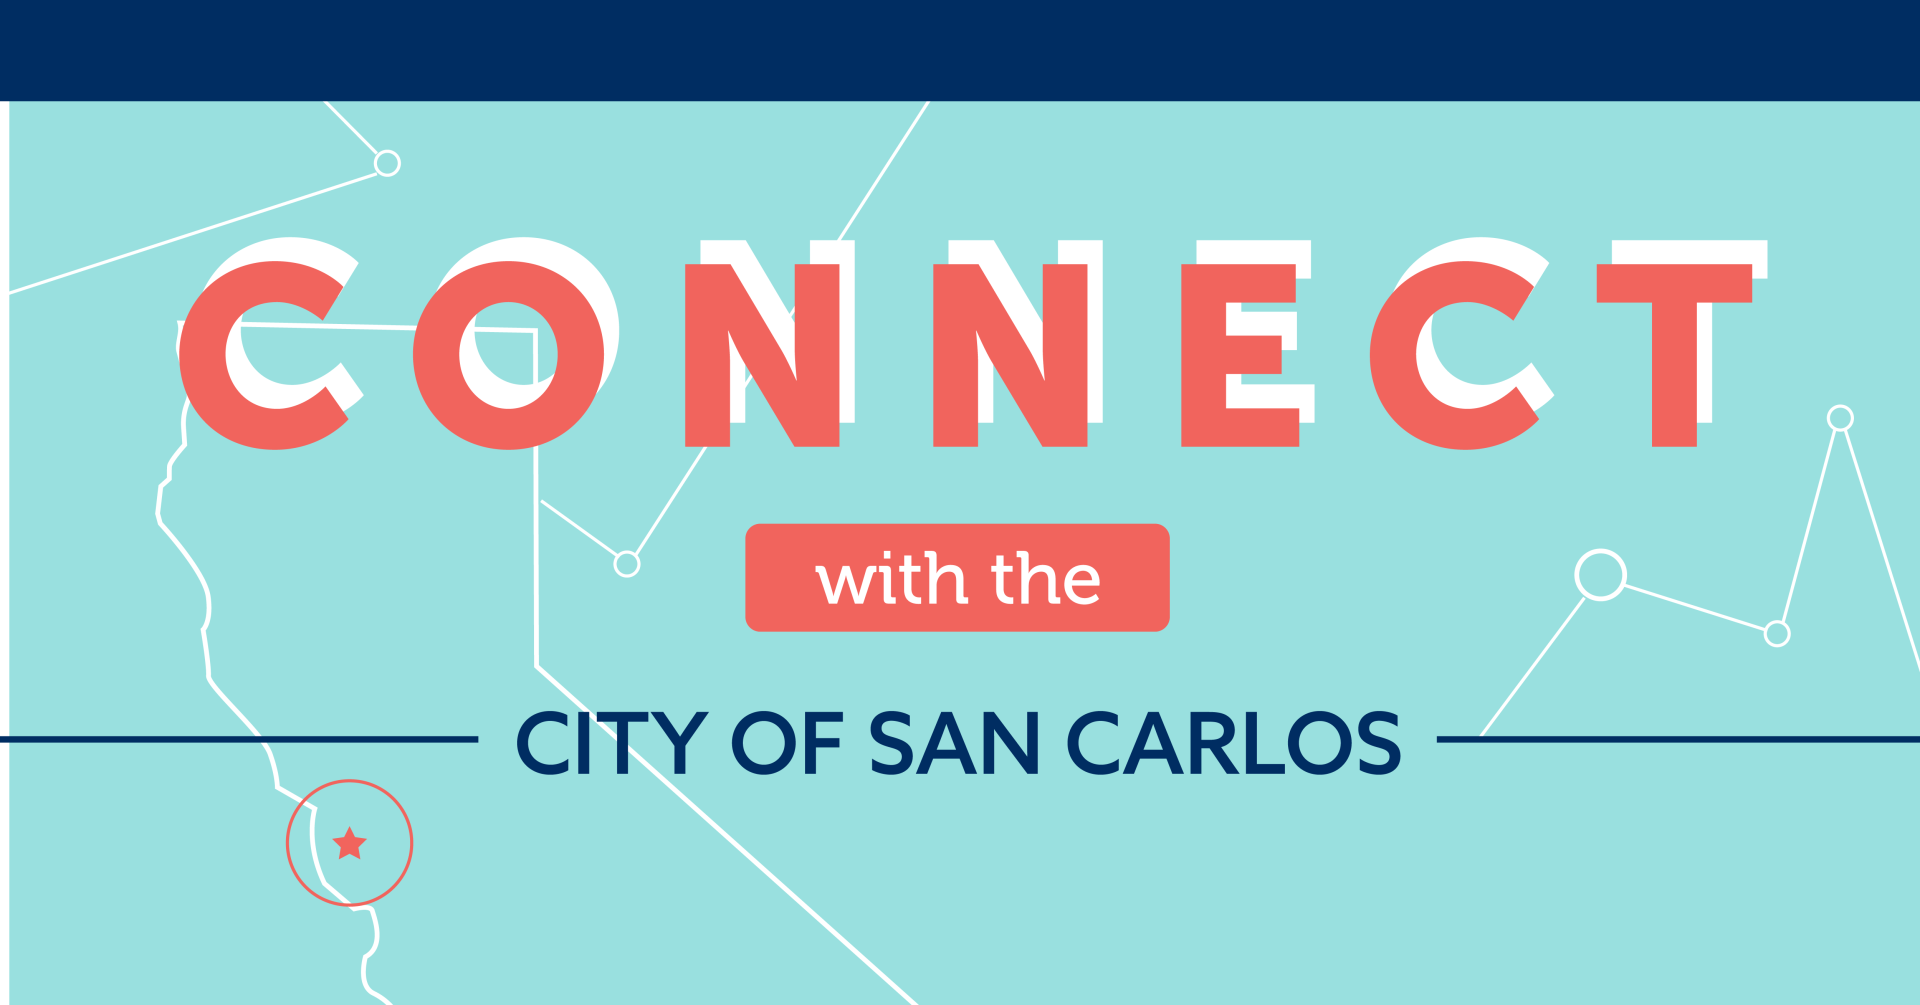 Connect with the City of San Carlos!